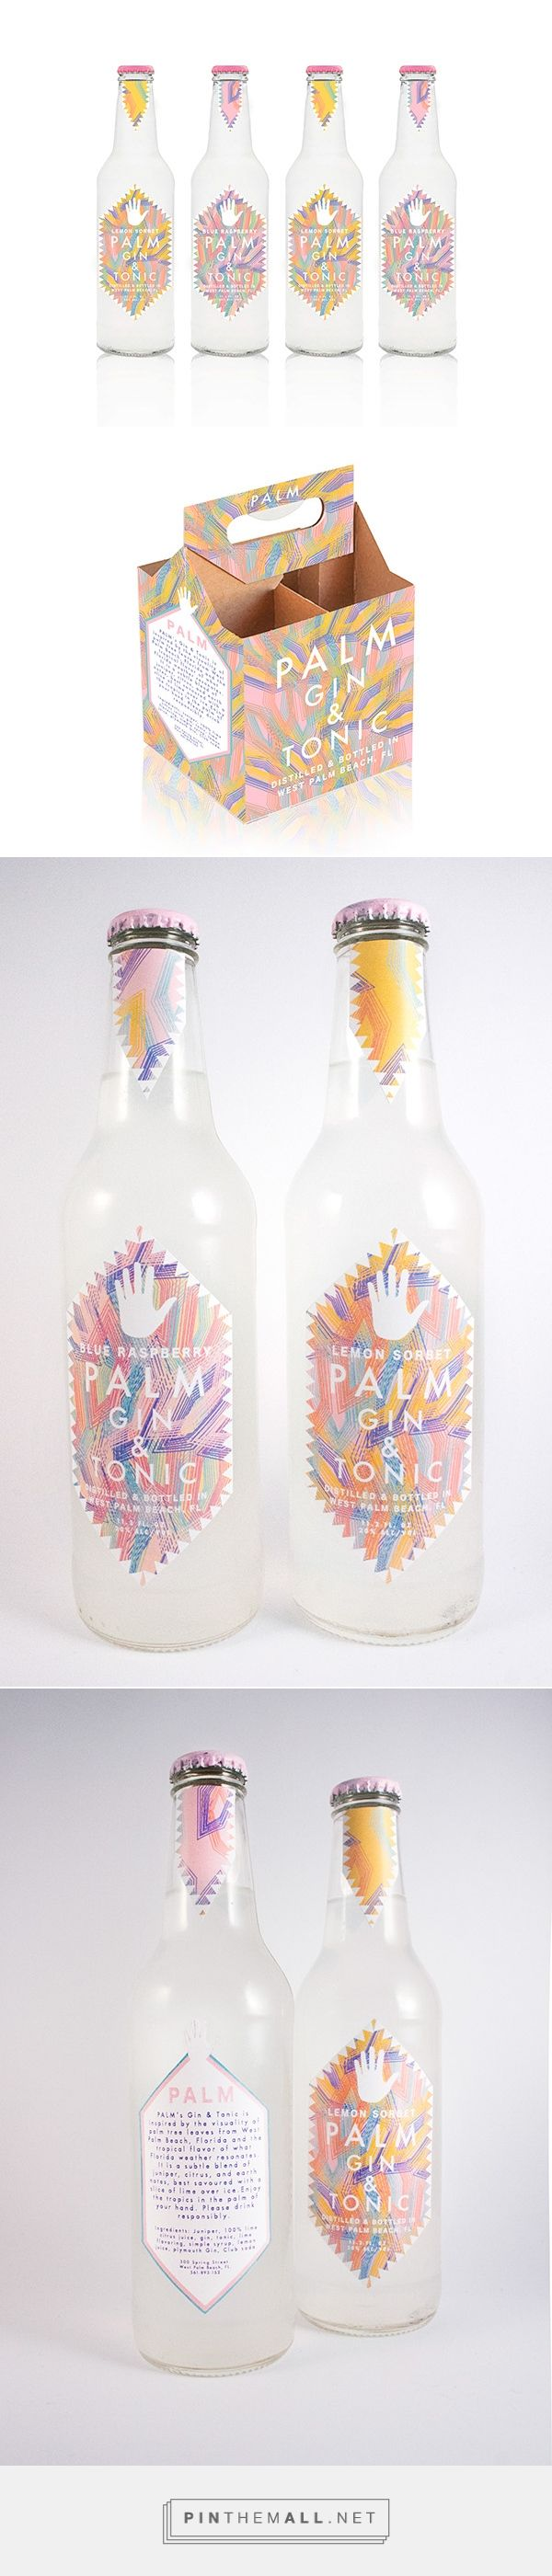 Hometown Gin and Tonic packaging on Pratt Portfolios by Jane Jun